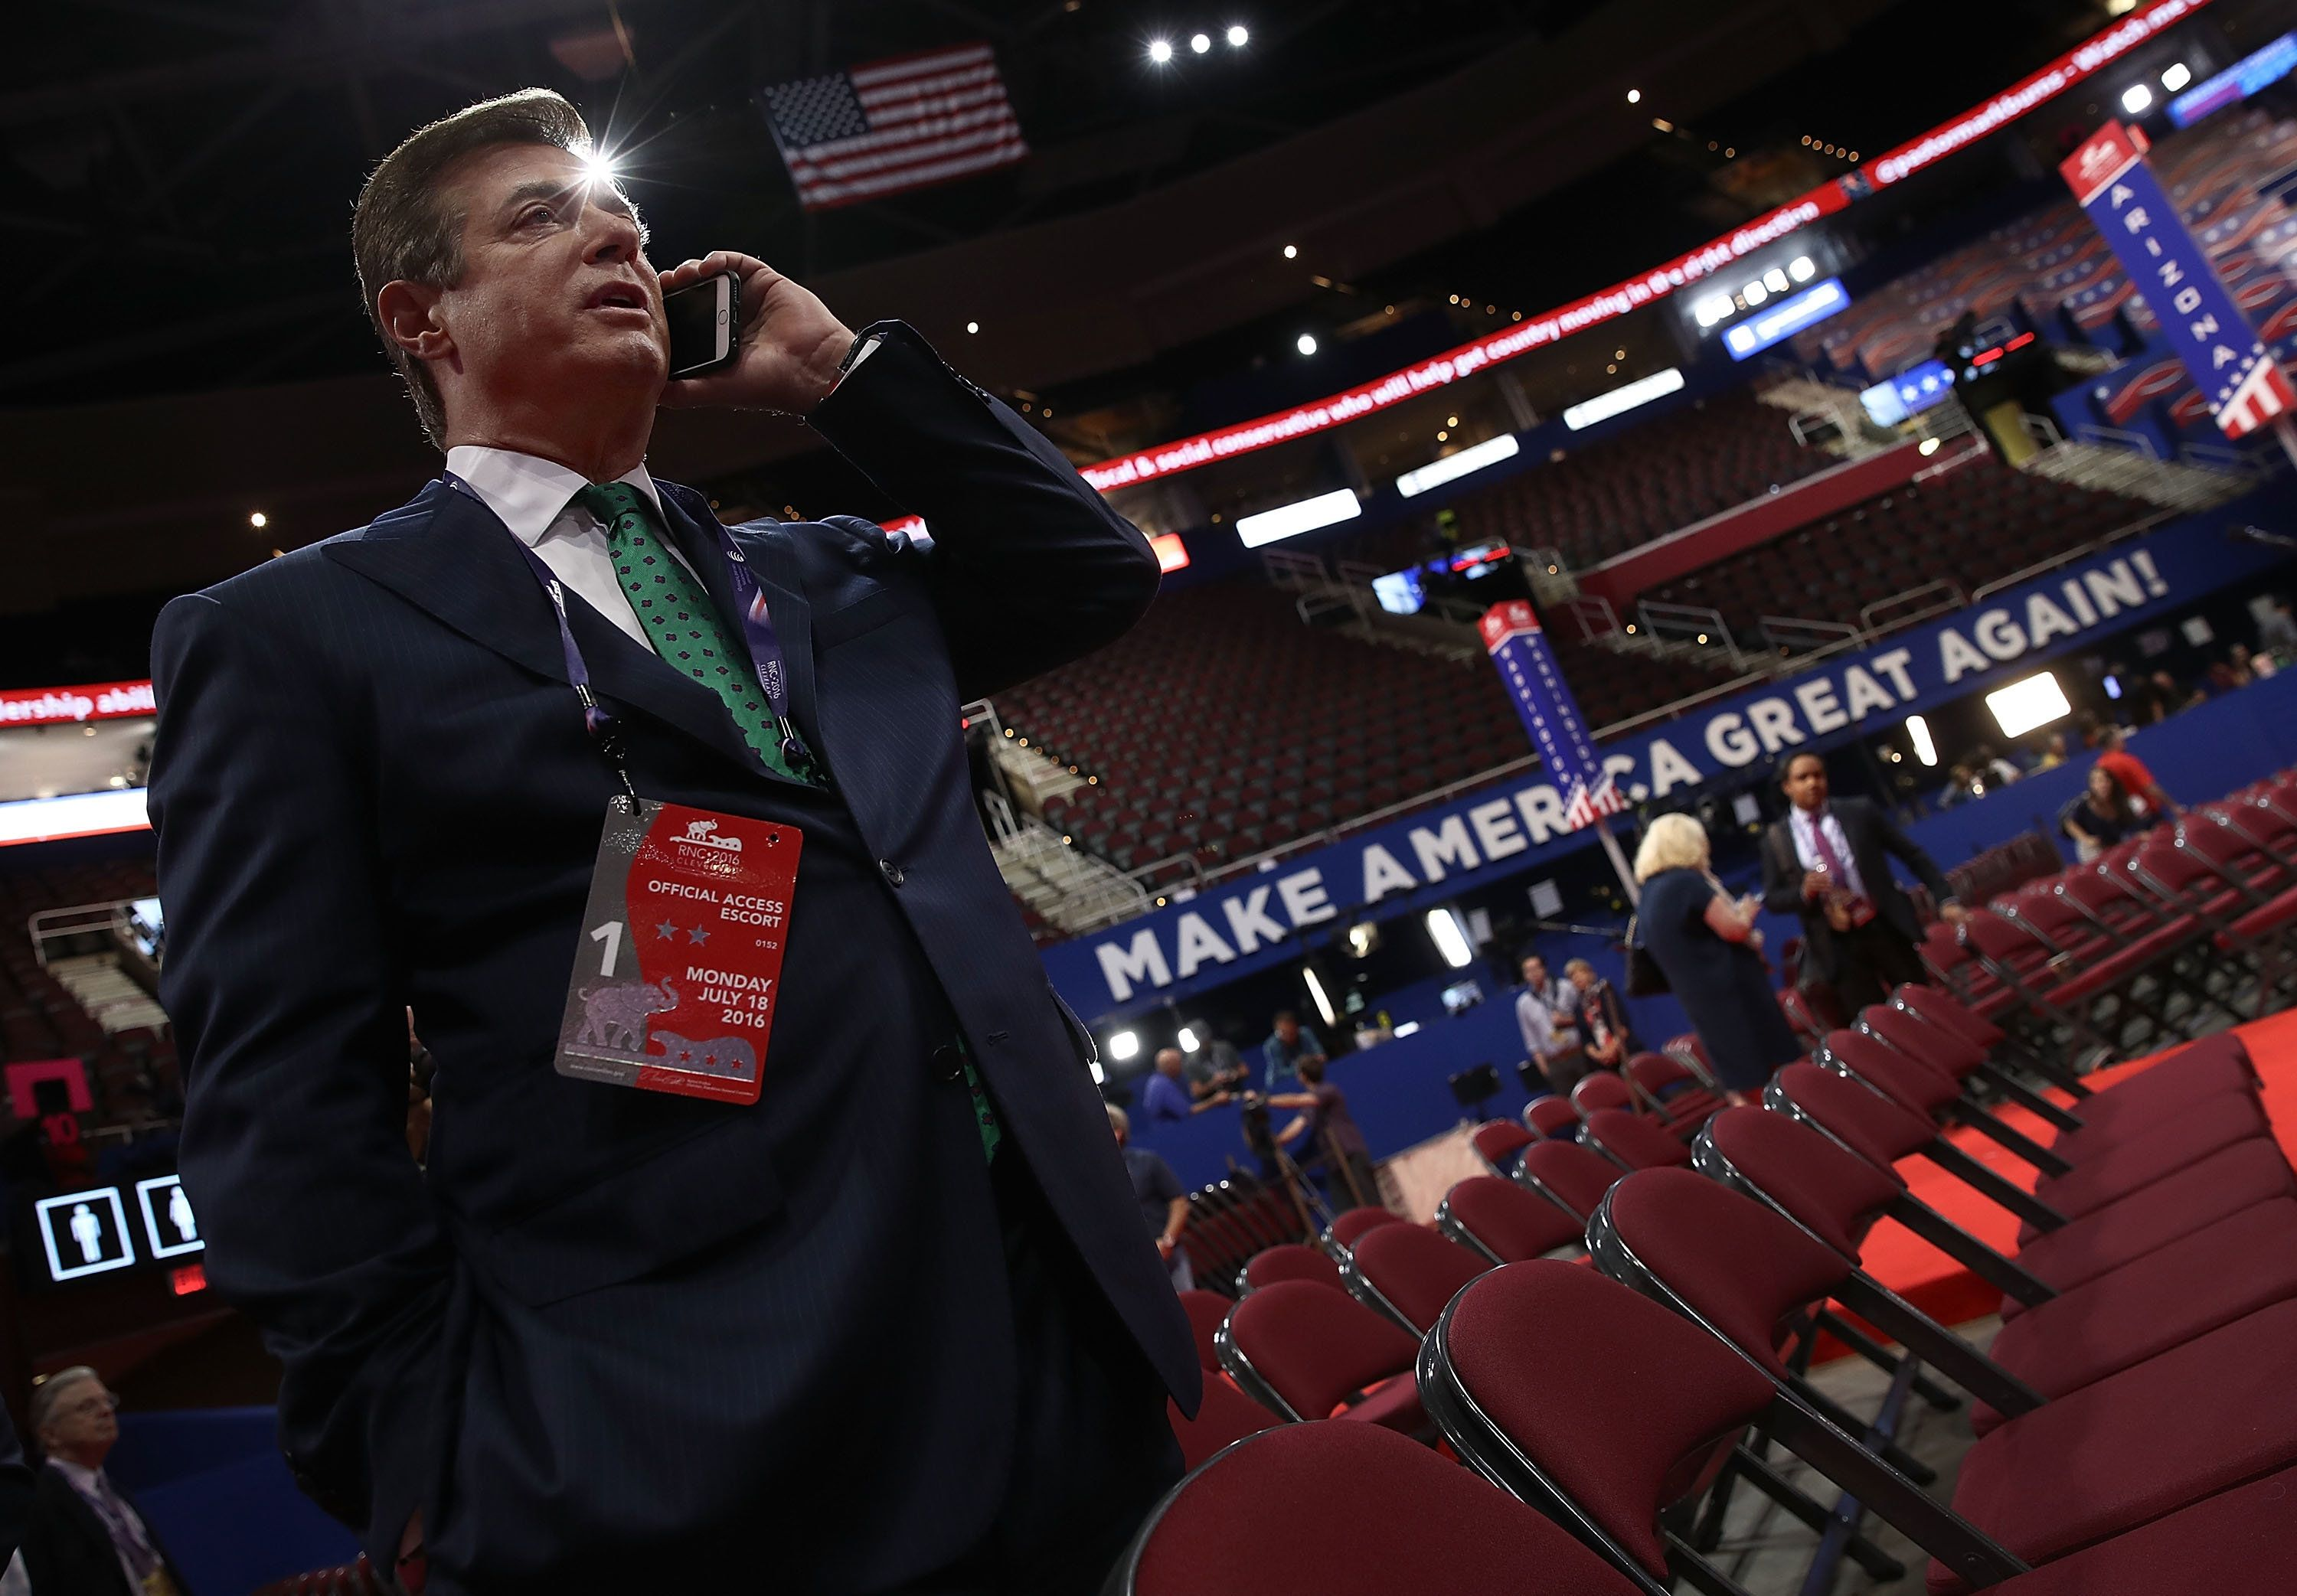 CLEVELAND, OH - JULY 17:  Paul Manafort, Campaign Manager for Donald Trump, speaks on the phone while touring the floor of the Republican National Convention at the Quicken Loans Arena as final preparations continue July 17, 2016 in Cleveland, Ohio. The Republican National Convention begins tomorrow.  (Photo by Win McNamee/Getty Images)